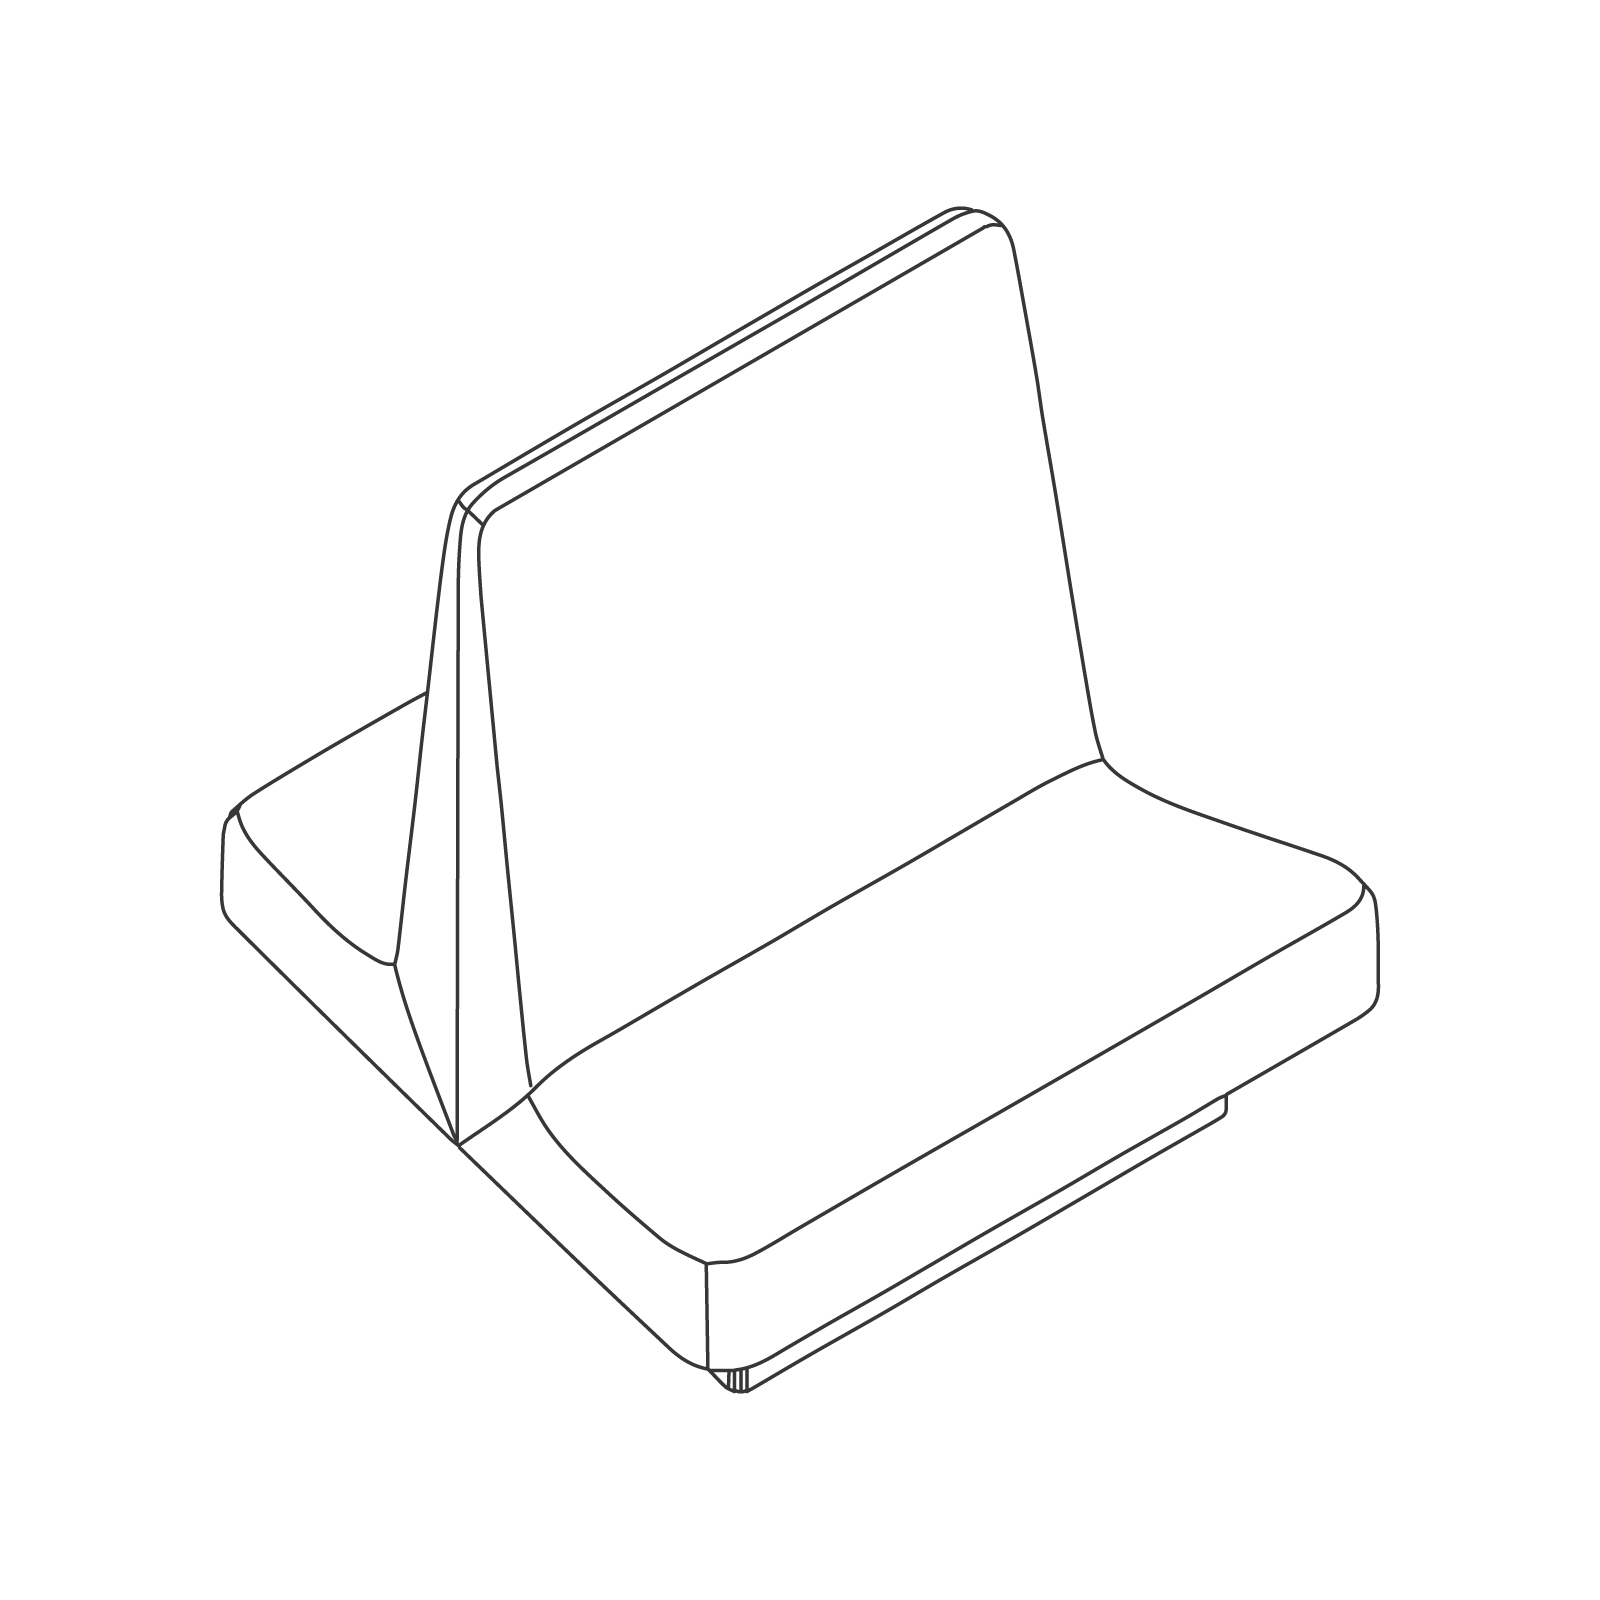 A line drawing of Rhyme Modular Seating–Middle.